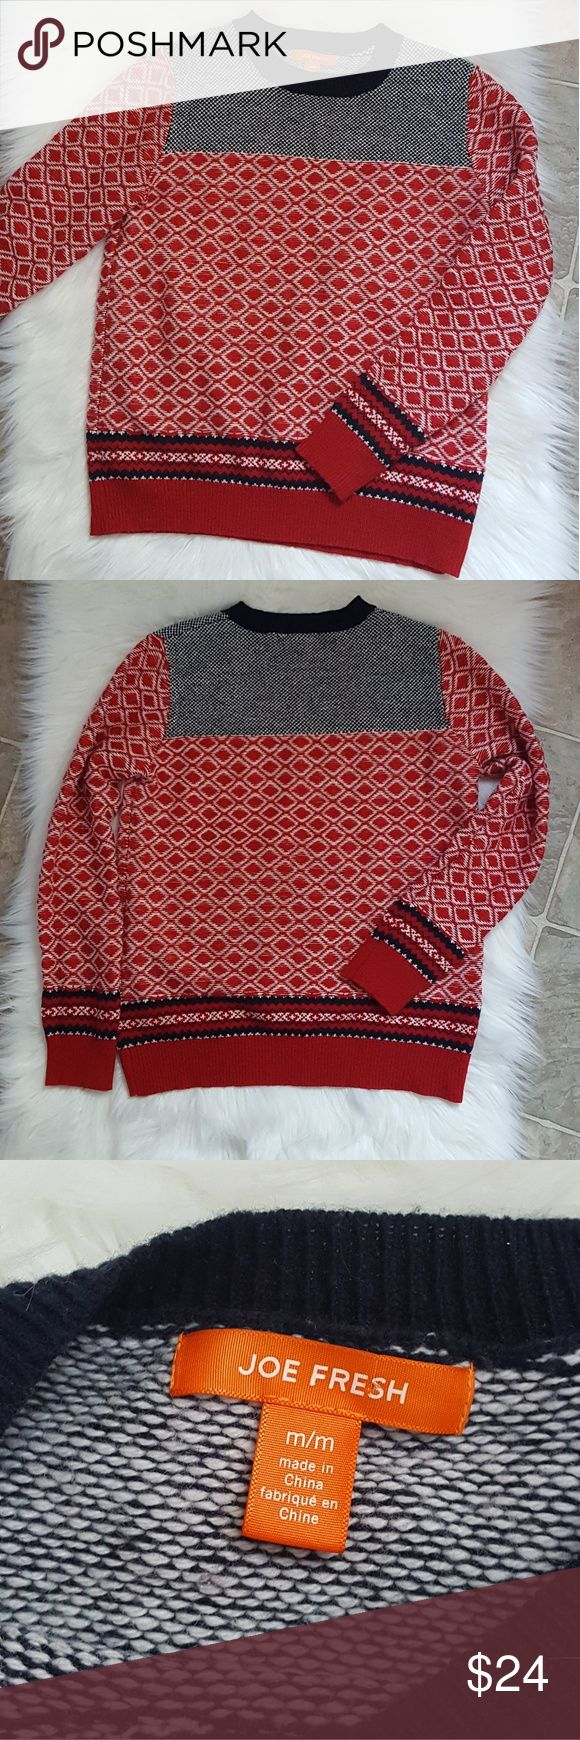 Joe Fresh nortic sweater  size M Joe Fresh nortic sweater  size M Super cute winter sweater. Pairs great with your favorite skinny and booties. Wool blend Red, navy, and white Excellent condition Joe Fresh Sweaters Crew & Scoop Necks